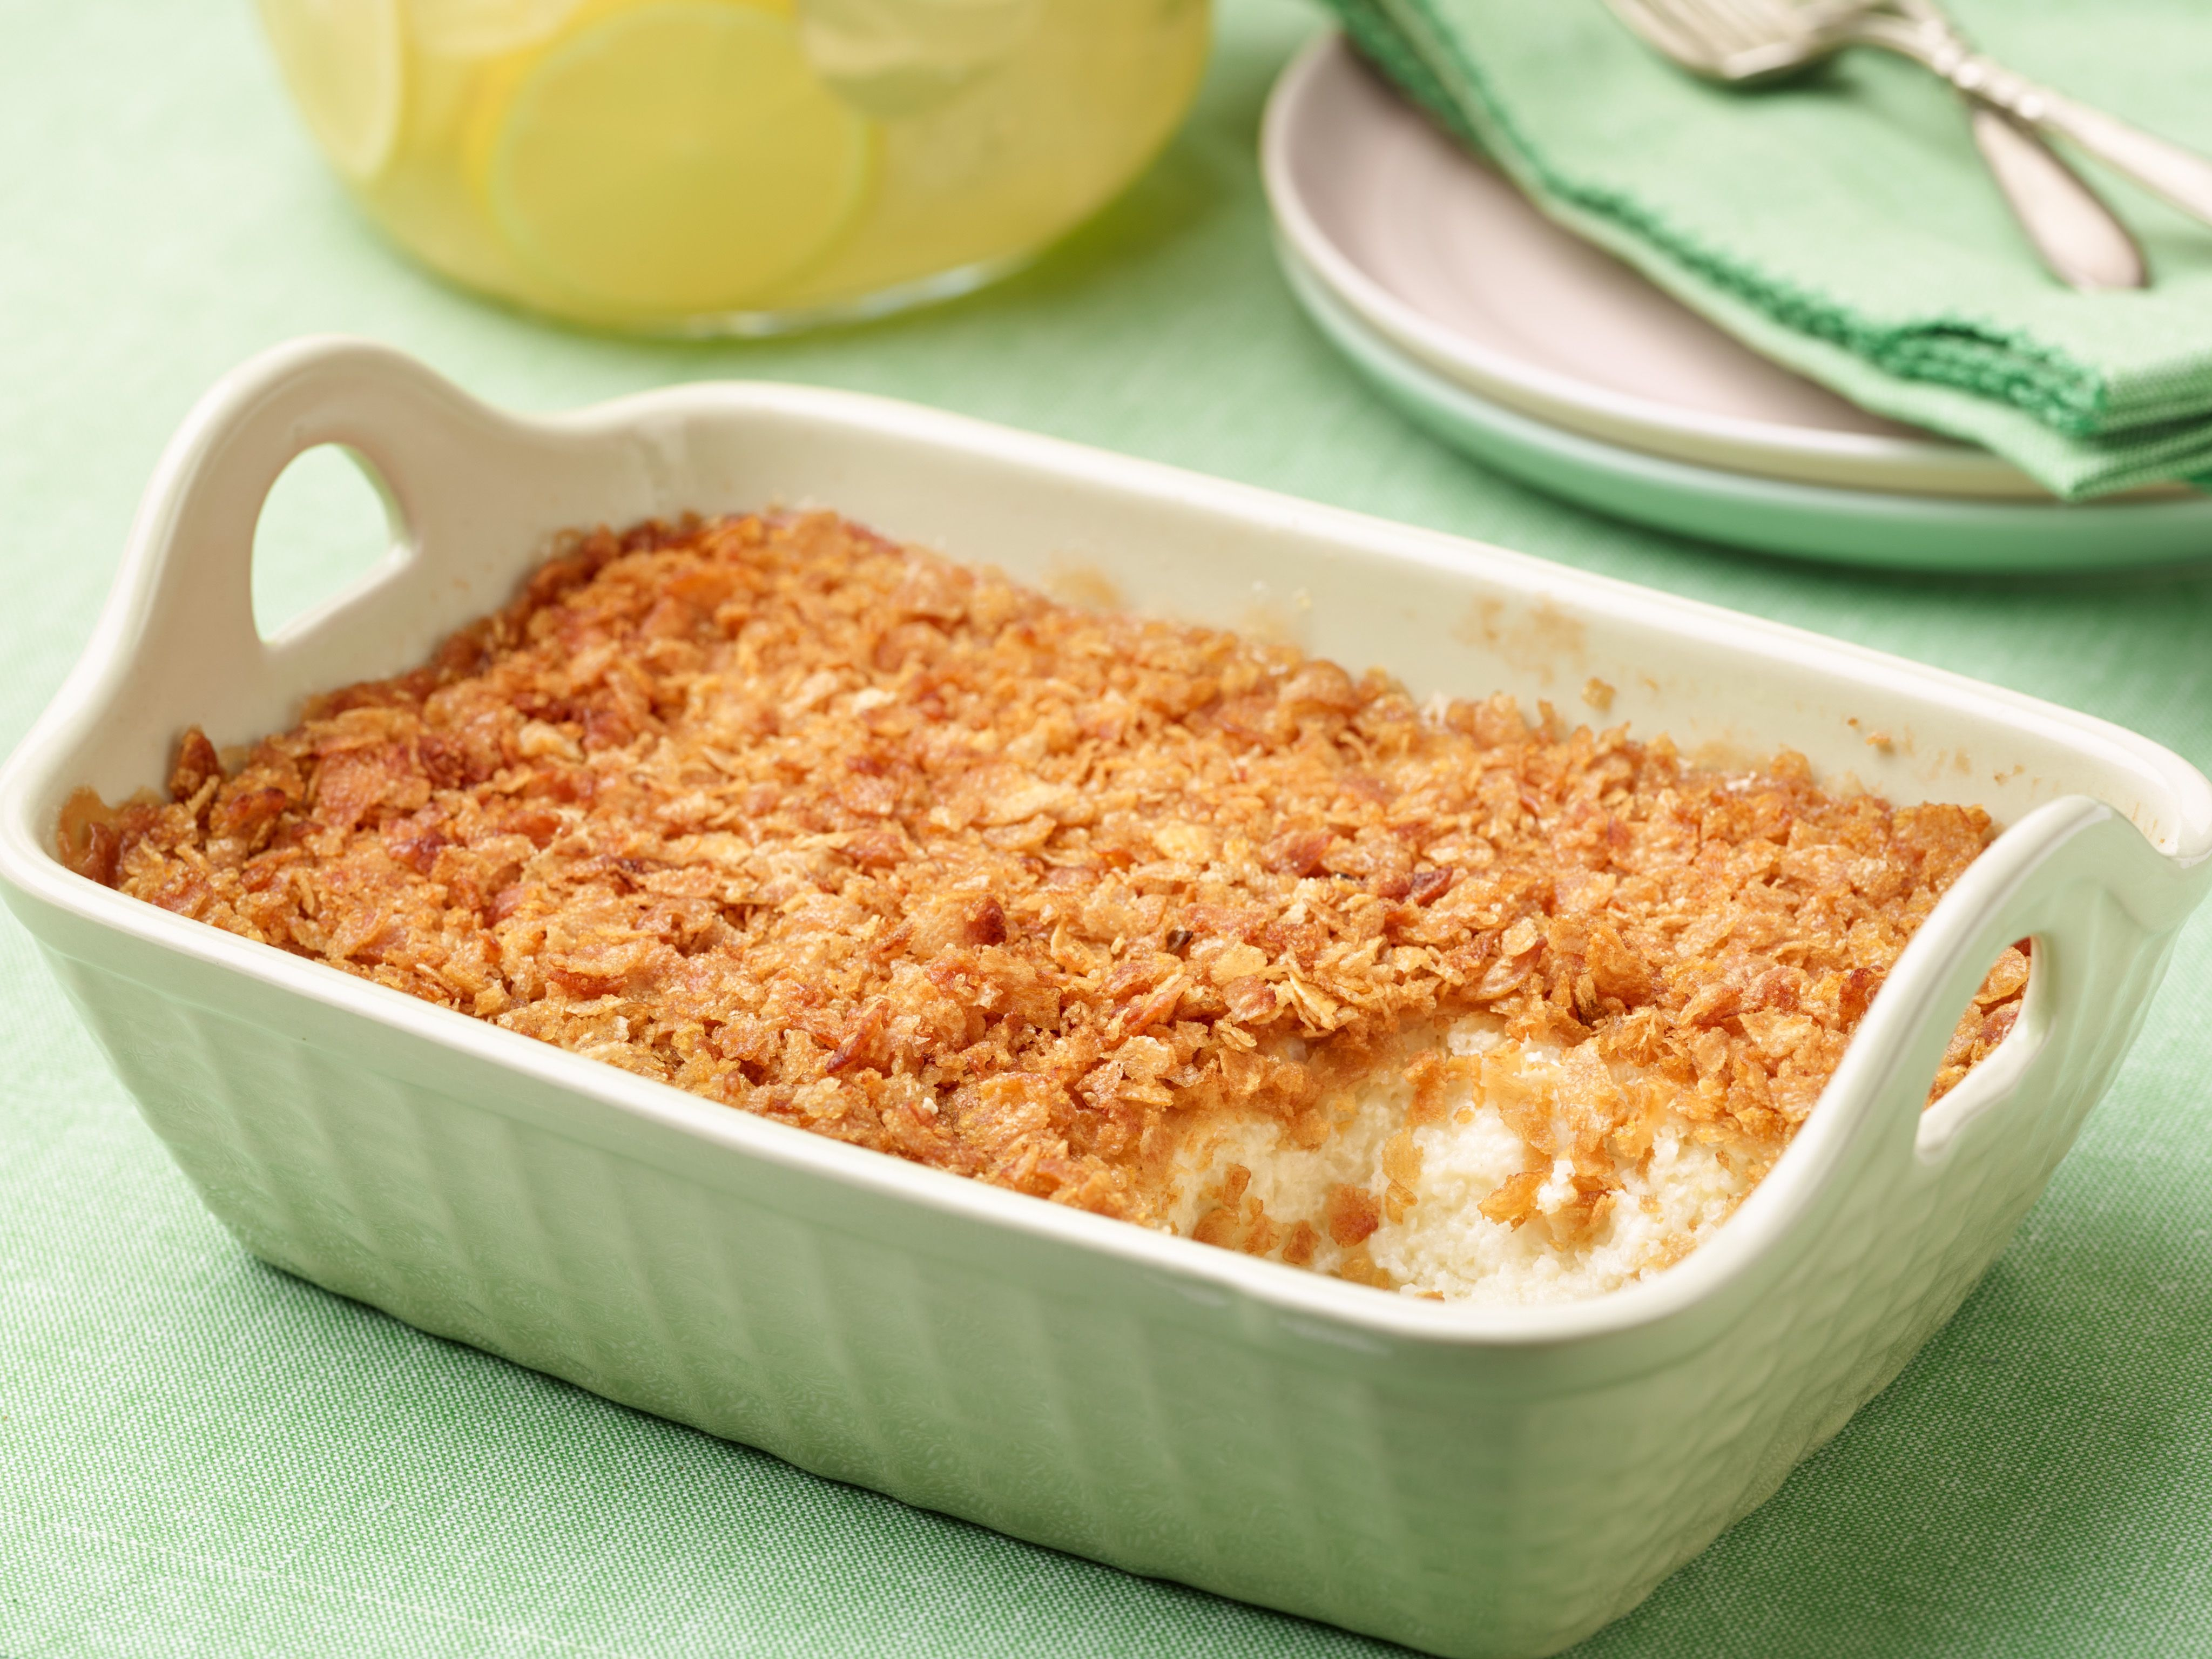 Garlic grits casserole recipe grits casserole trisha yearwood garlic grits casserole food network trisha yearwoodcasserole recipeshominy forumfinder Image collections